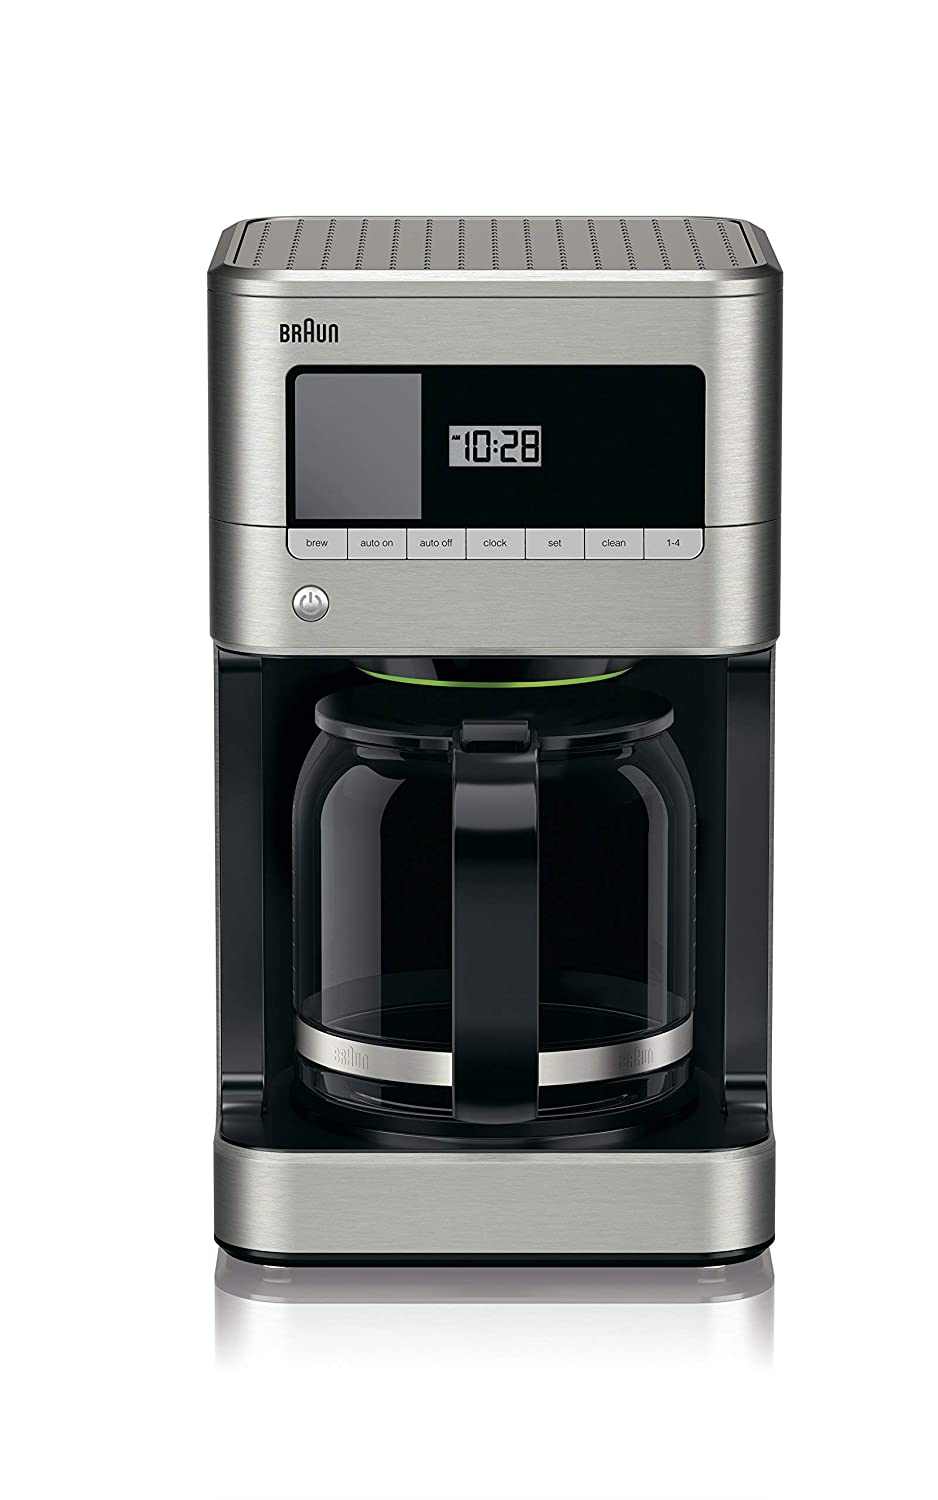 Braun KF7070 BrewSense Drip Glass Coffeemaker, 12 Cup, Stainless Steel (Renewed)